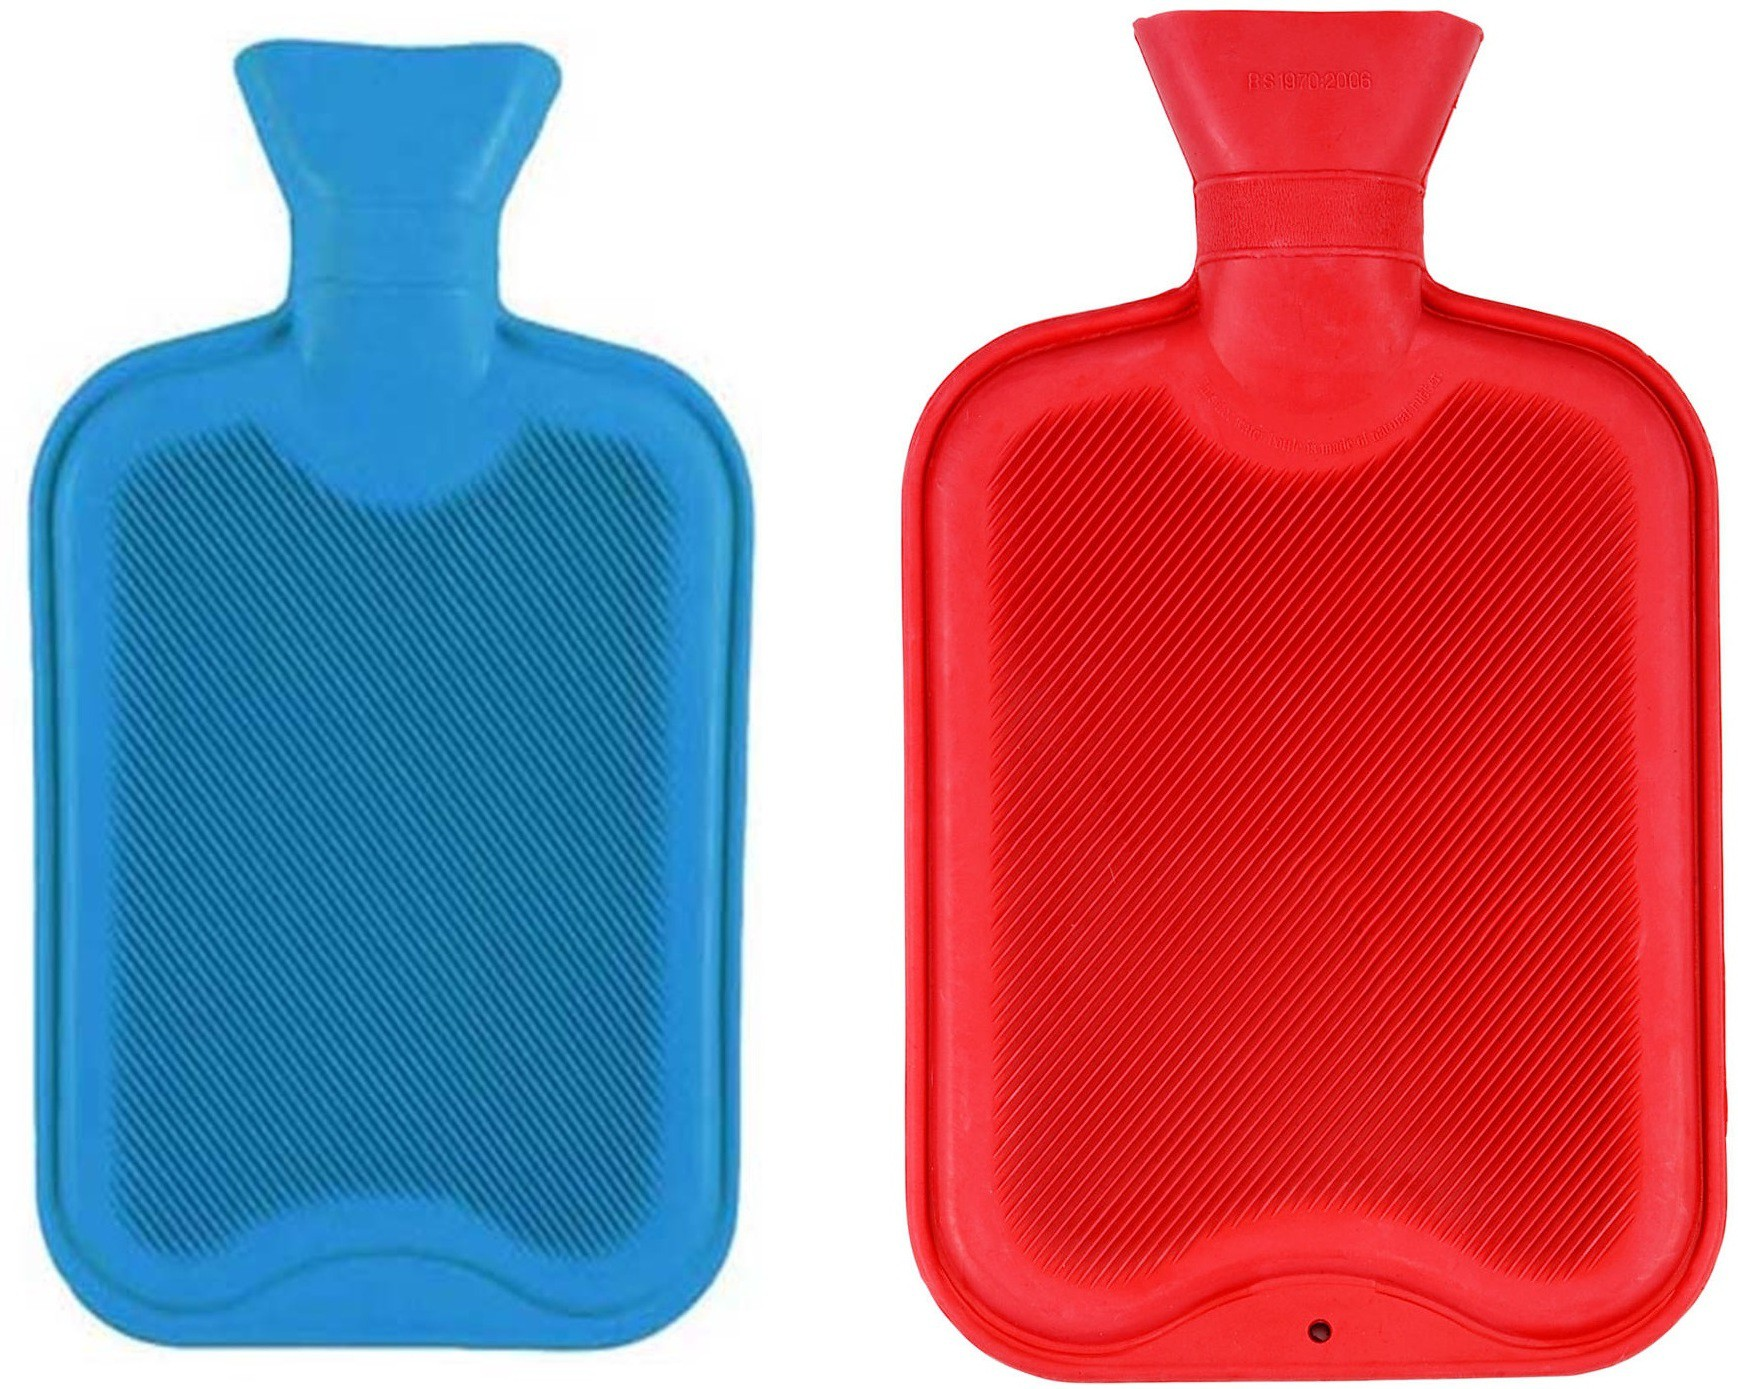 Ramco Pain Reliever Comboss Non-electrical 3 L Hot Water Bag(Red, Blue)